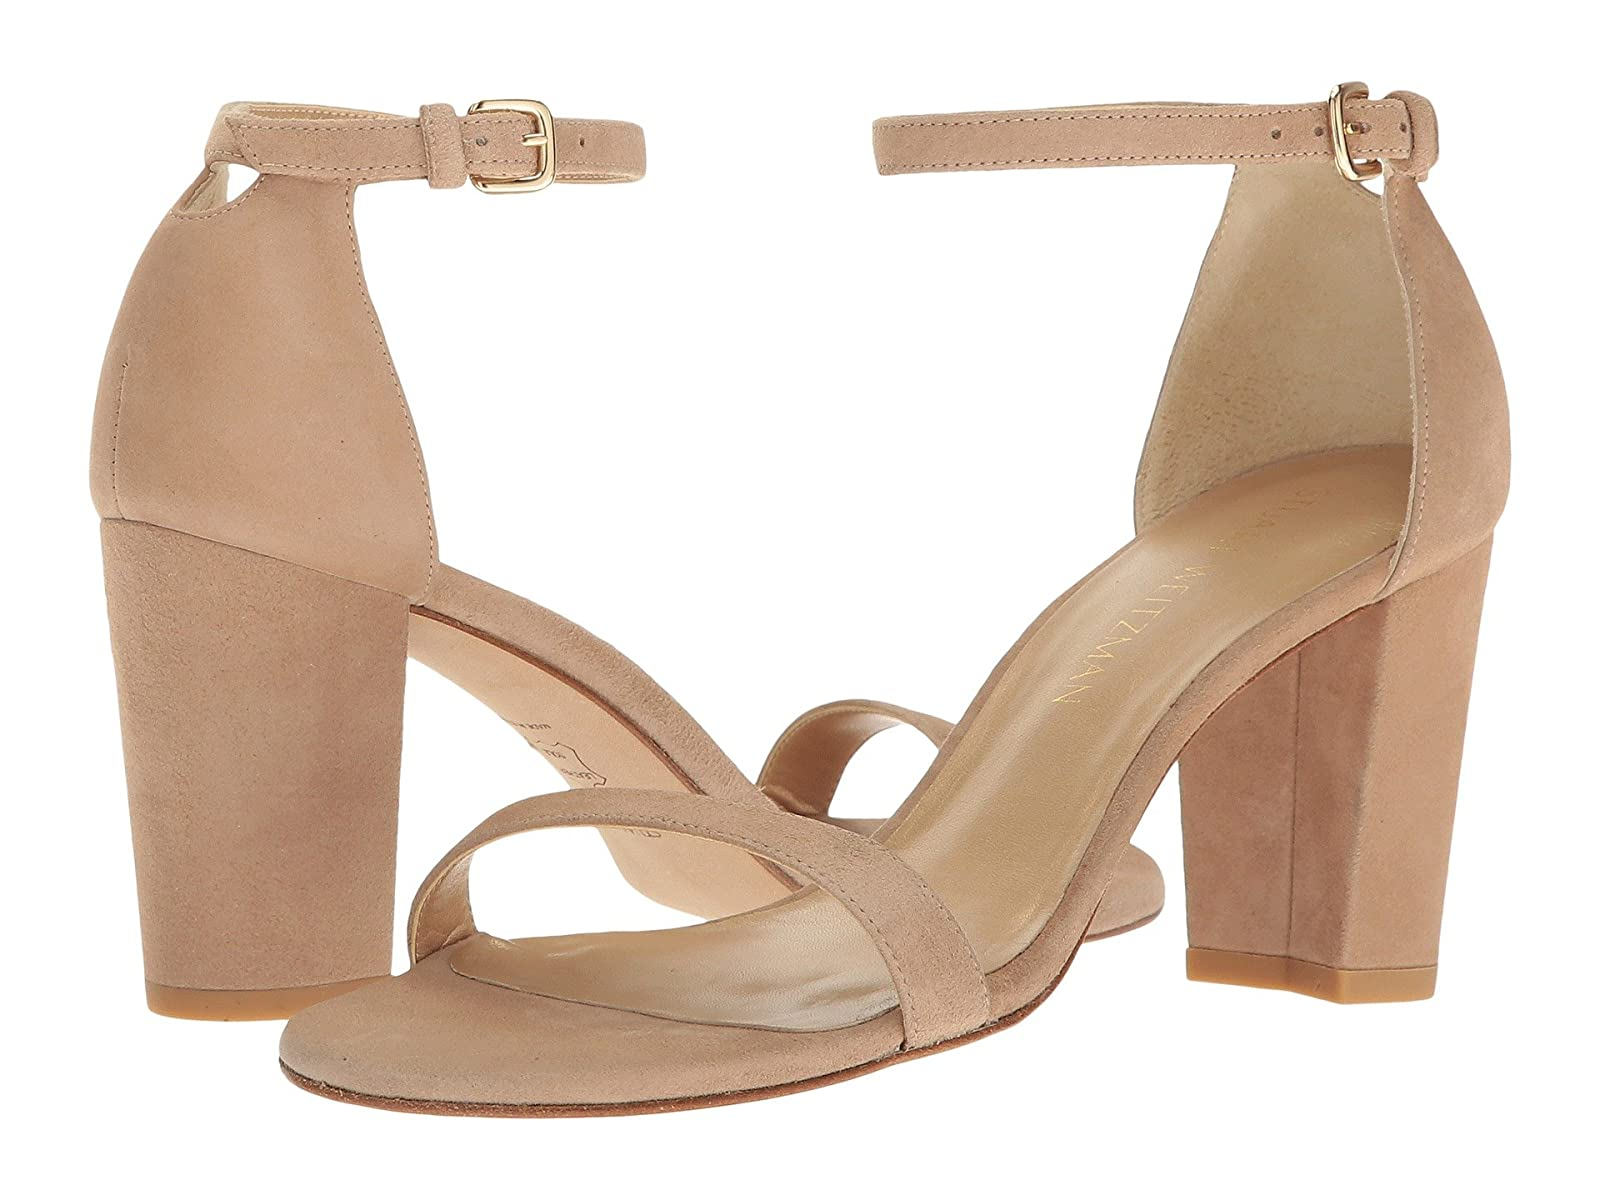 Stuart Weitzman NearlynudeAtmospheric grades have affordable shoes